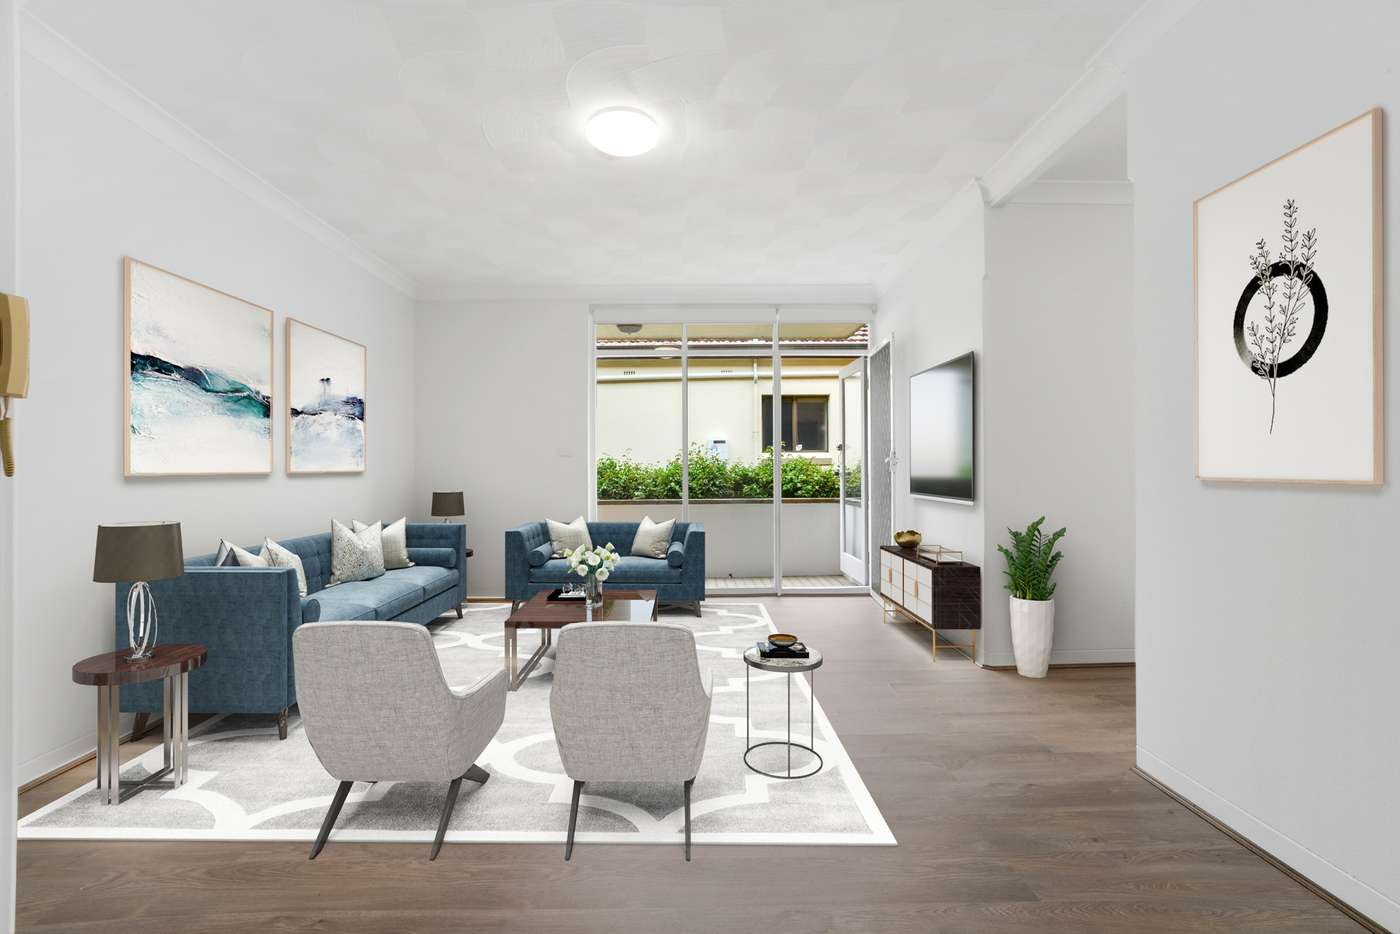 Main view of Homely apartment listing, 1/23 Carrington Street, North Strathfield NSW 2137